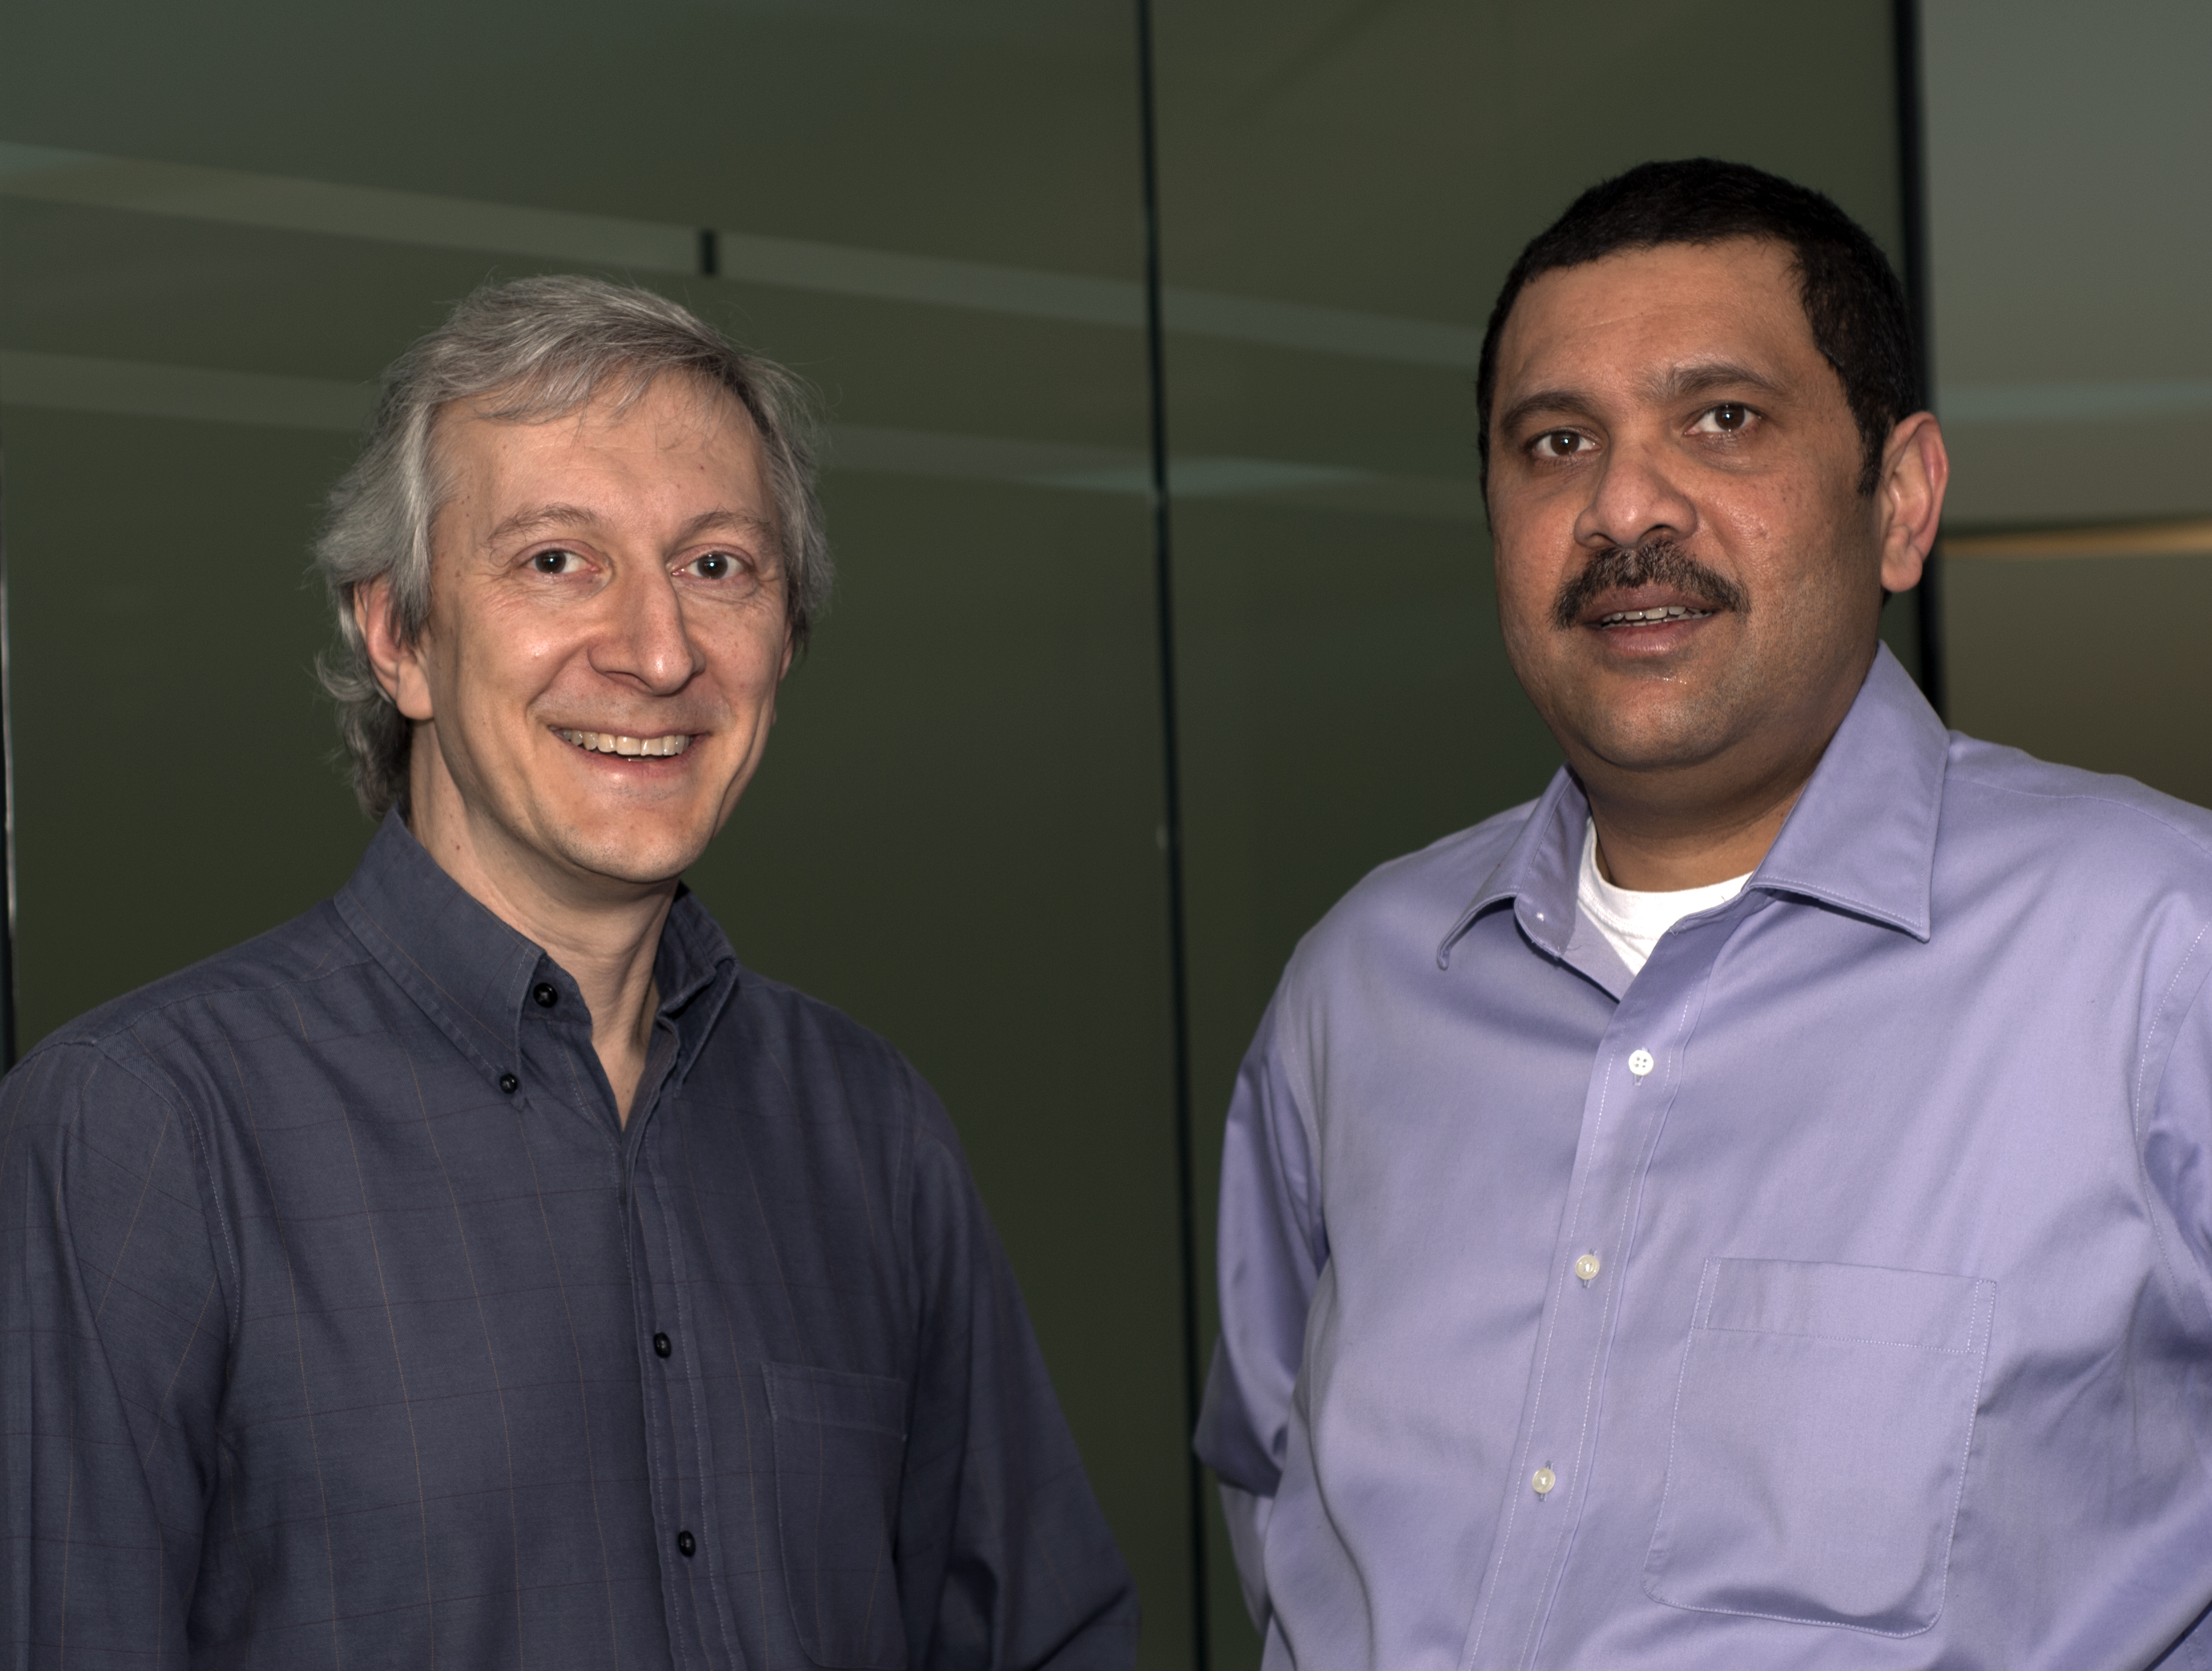 Ken Rugg, CEO,and Amrith Kumar, CTO of Tesora